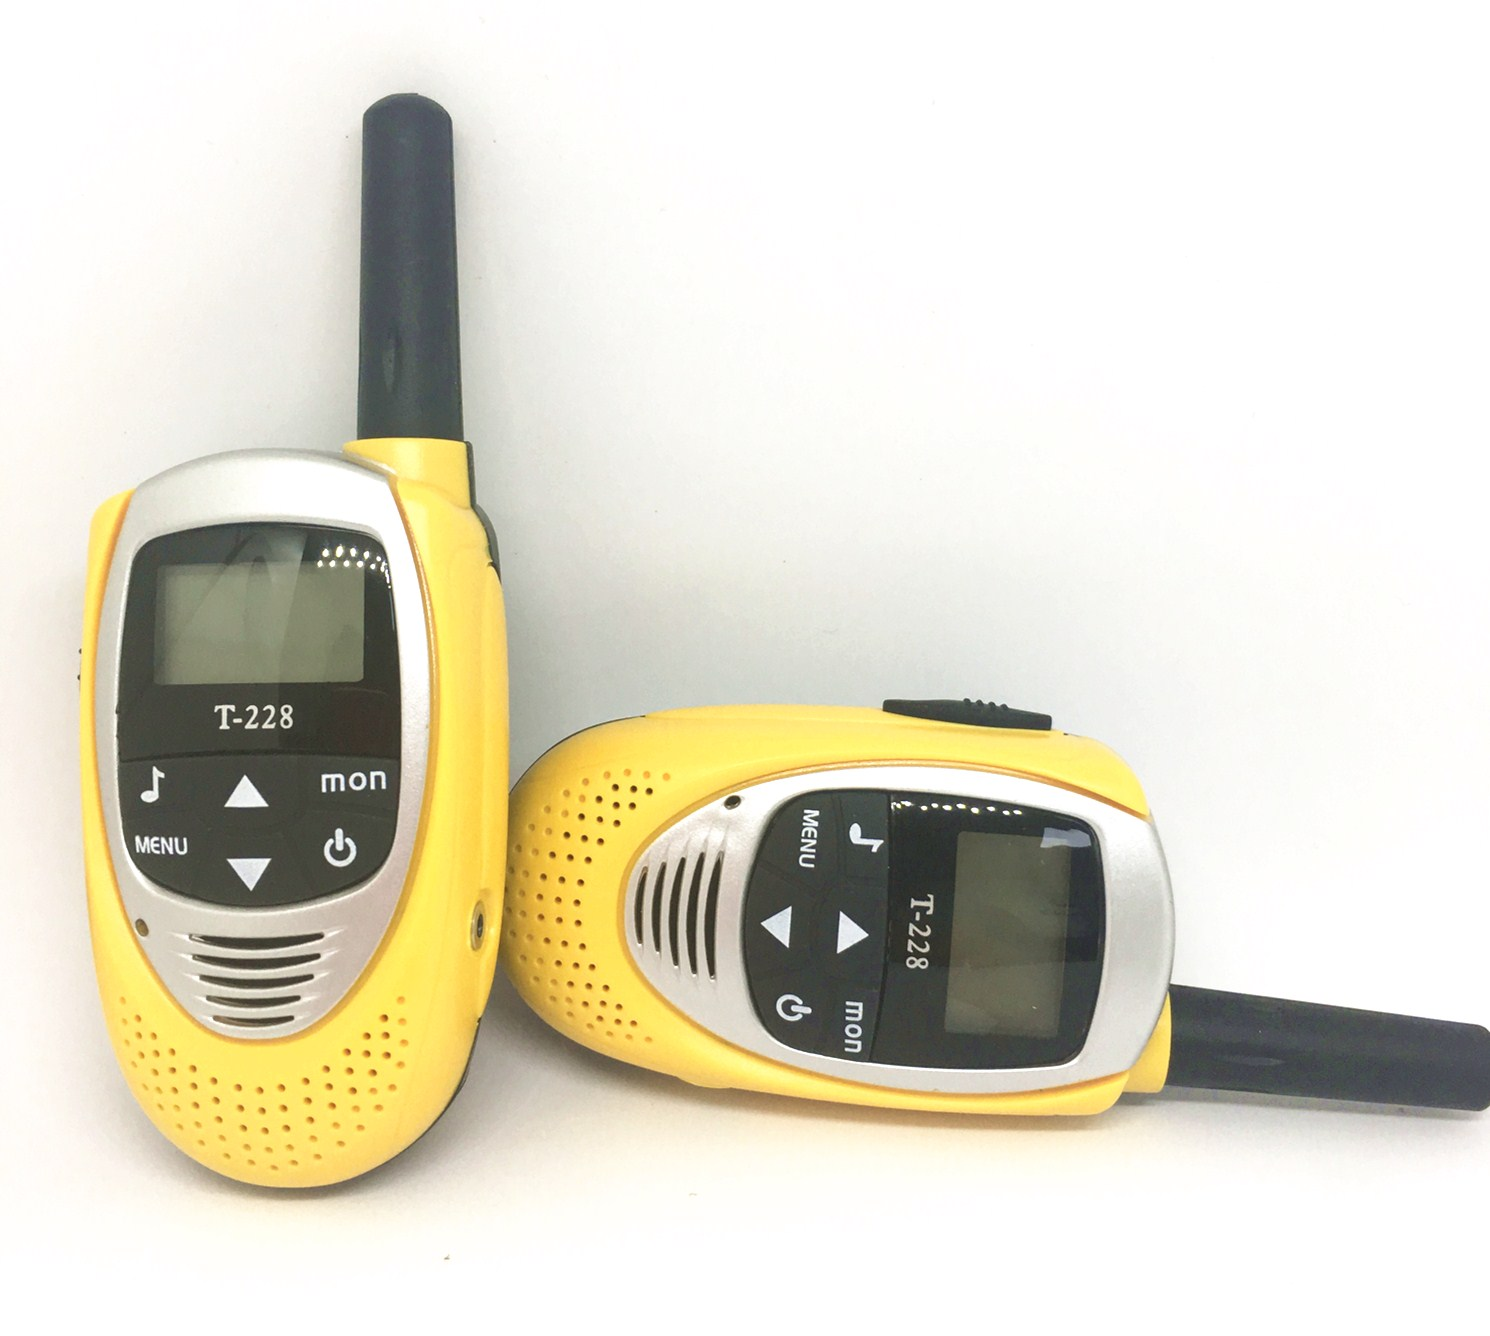 best selling 5w pmr 2 way radio walkie talkie for sale